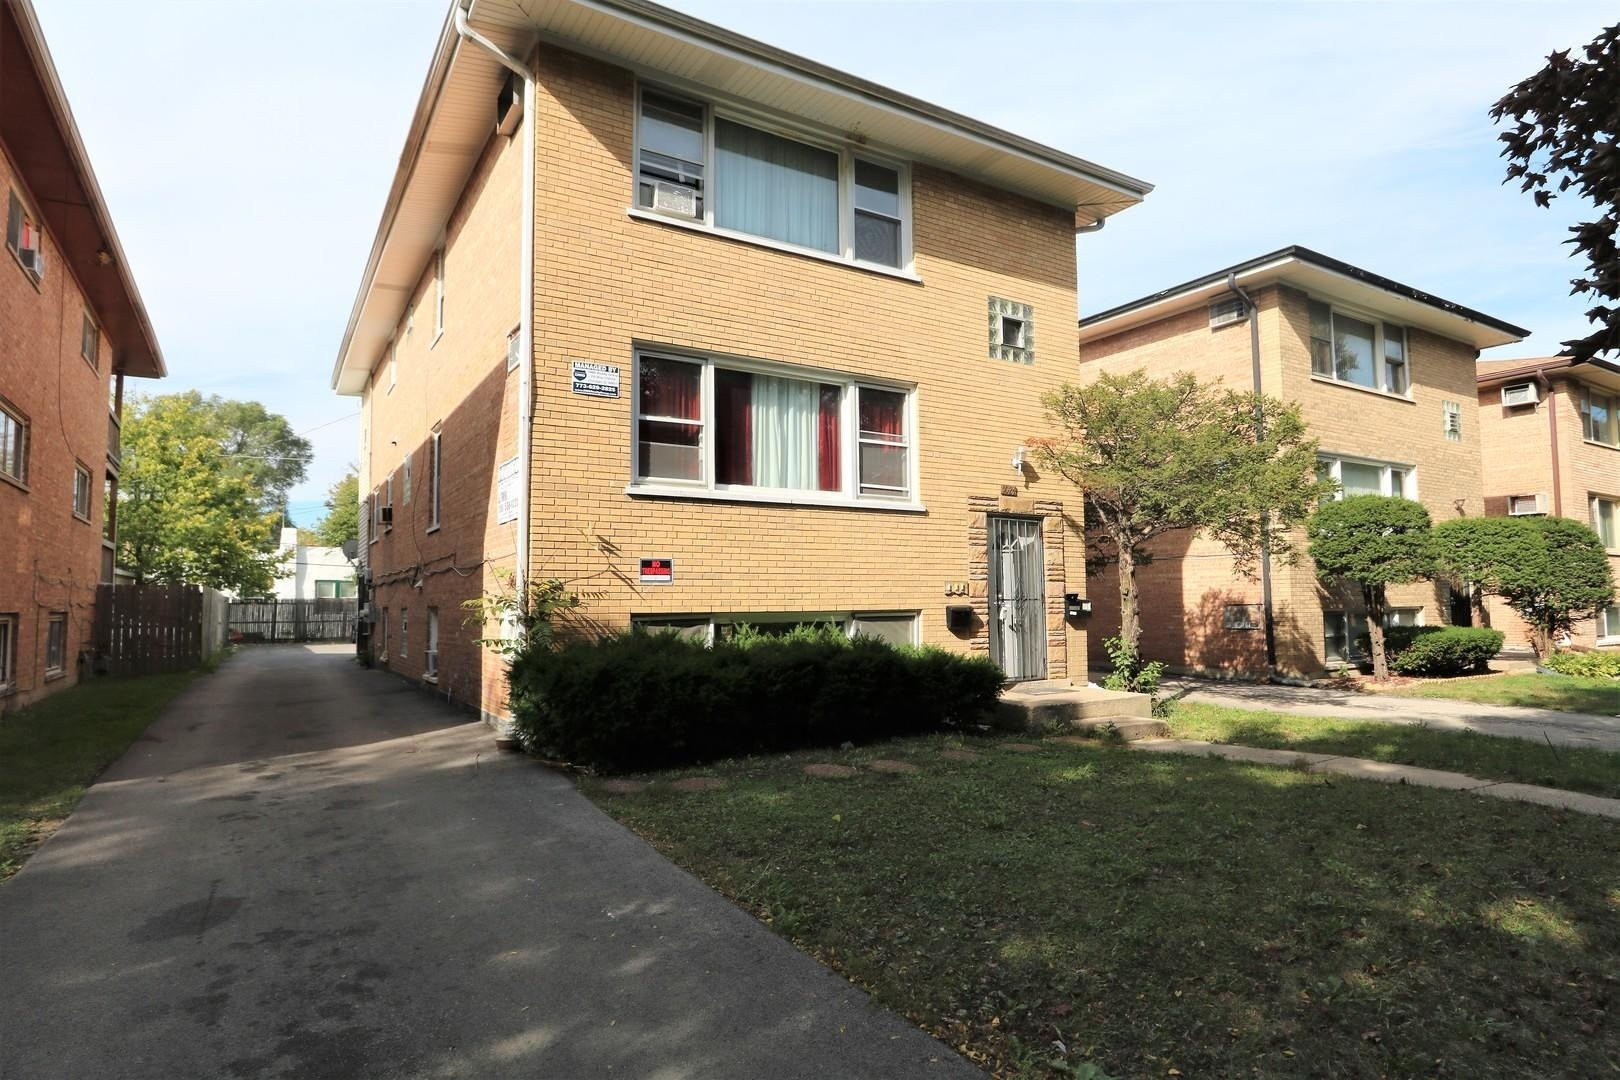 1024 S 11Th Ave #garden, Maywood, Il 60153 - 2 Bed, 1 Bath Multi intended for Garden House Apartments Maywood Il